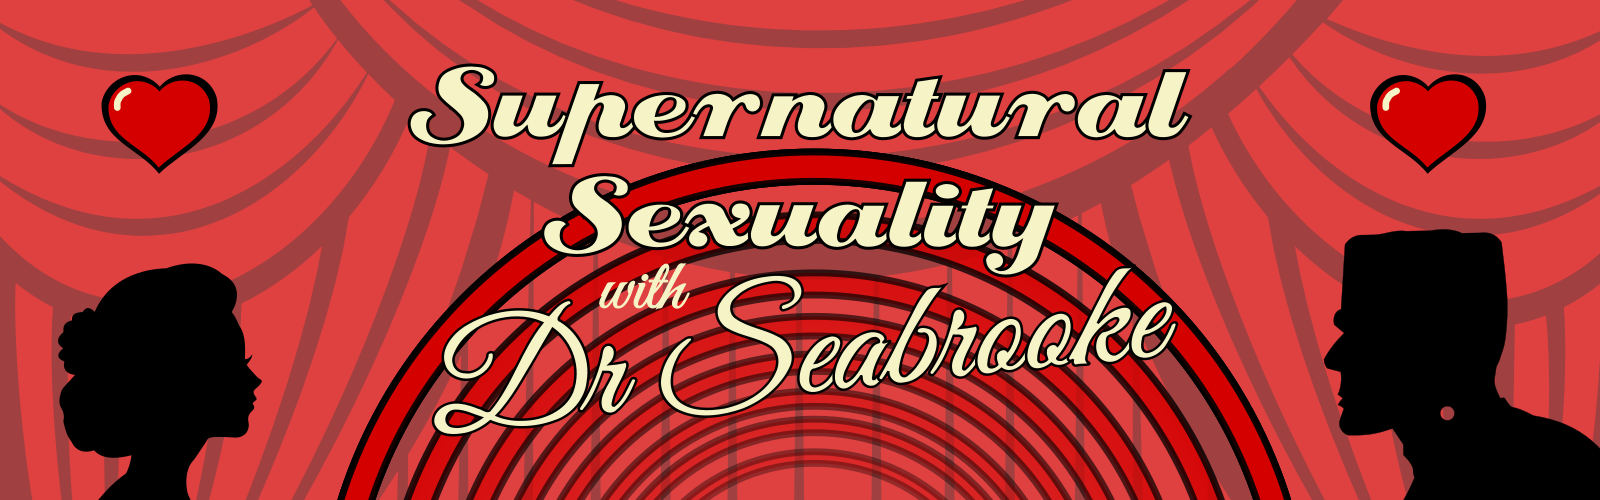 Supernatural Sexuality with Dr Seabrooke Hero Image 3 PNG.png